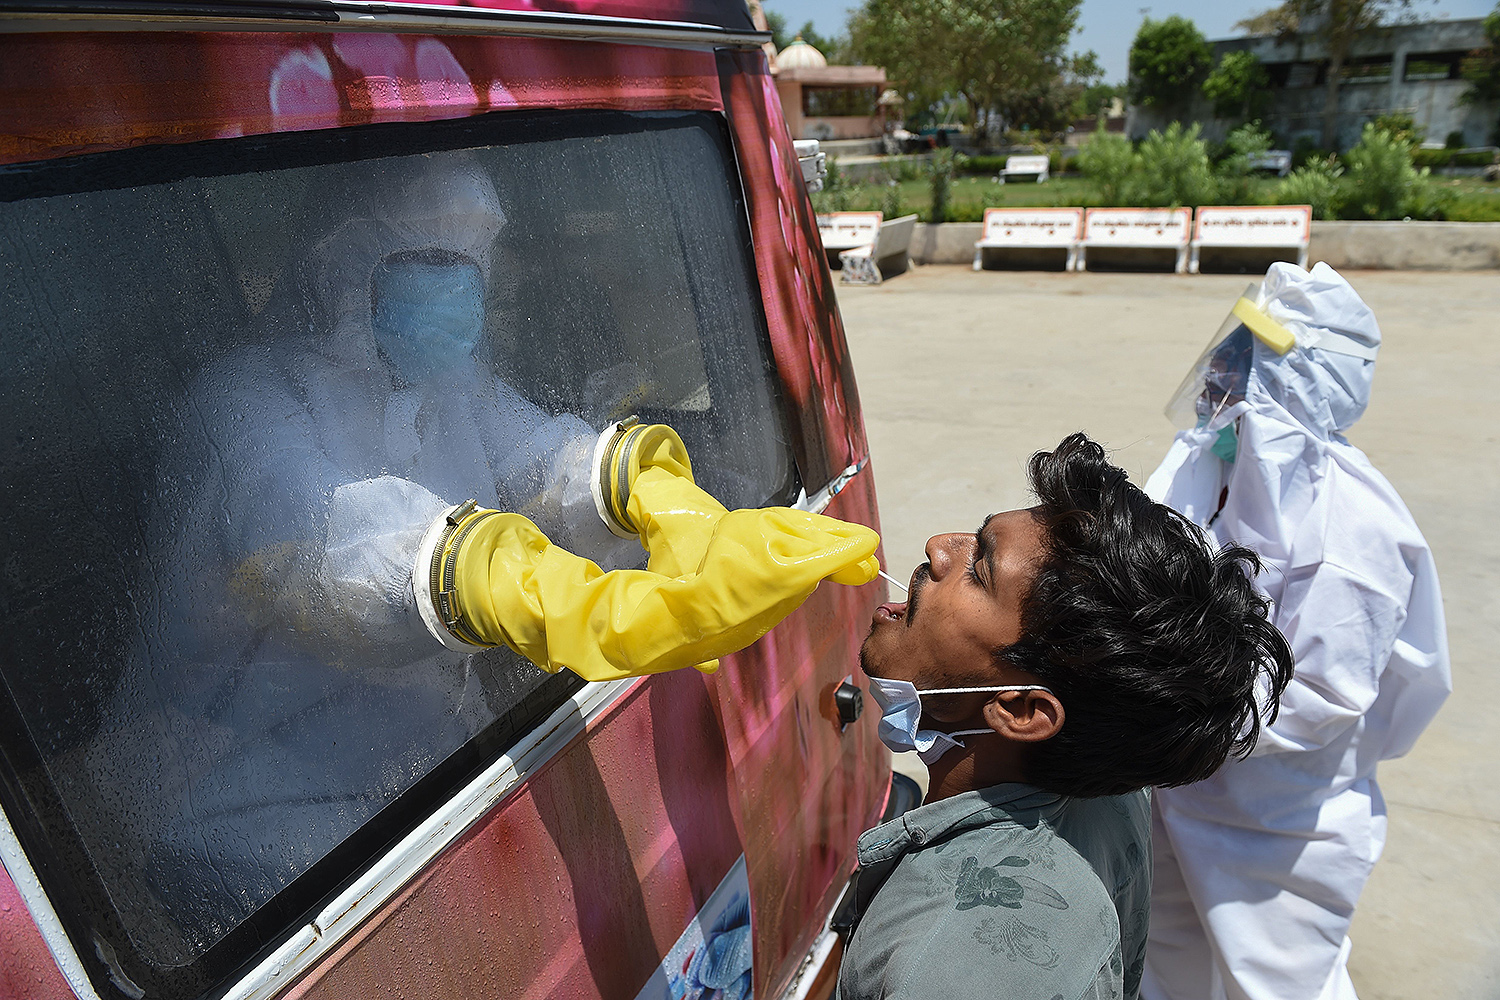 From inside a mobile testing van, a health official collects a sample to test for COVID-19 near Ahmedabad, India, on April 23. SAM PANTHAKY/AFP via Getty Images